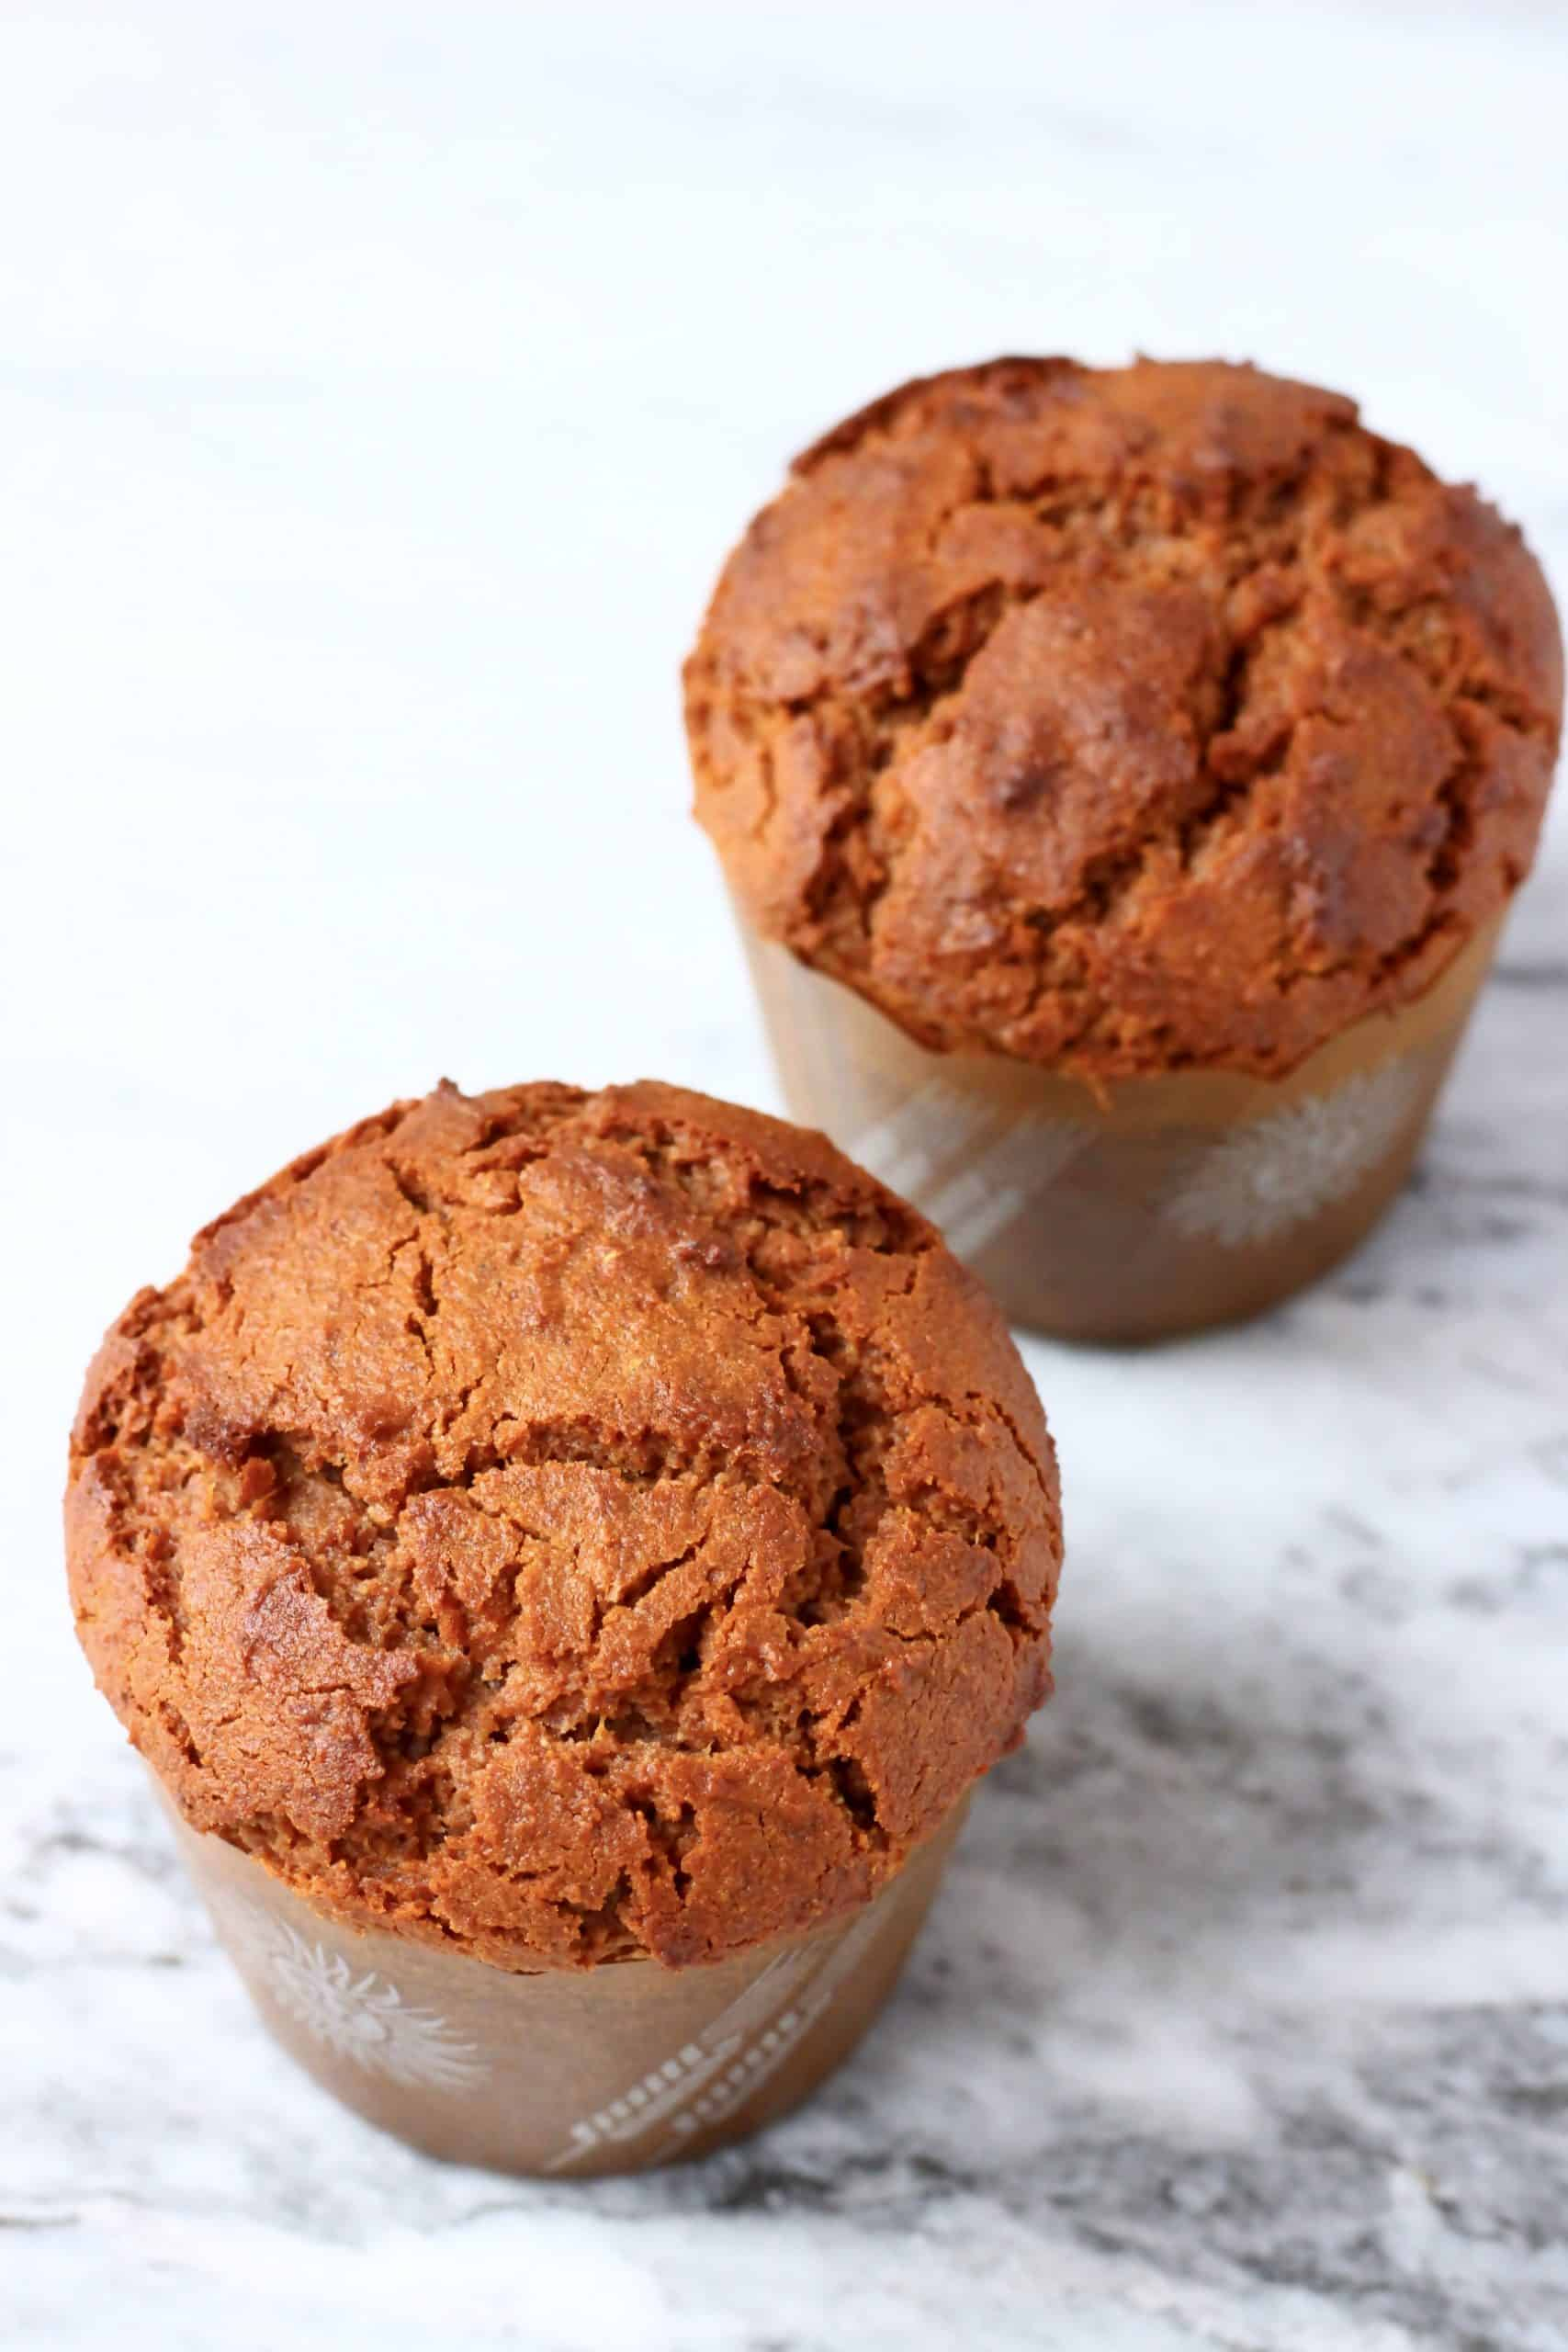 Two gluten-free vegan gingerbread muffins in brown muffin cases